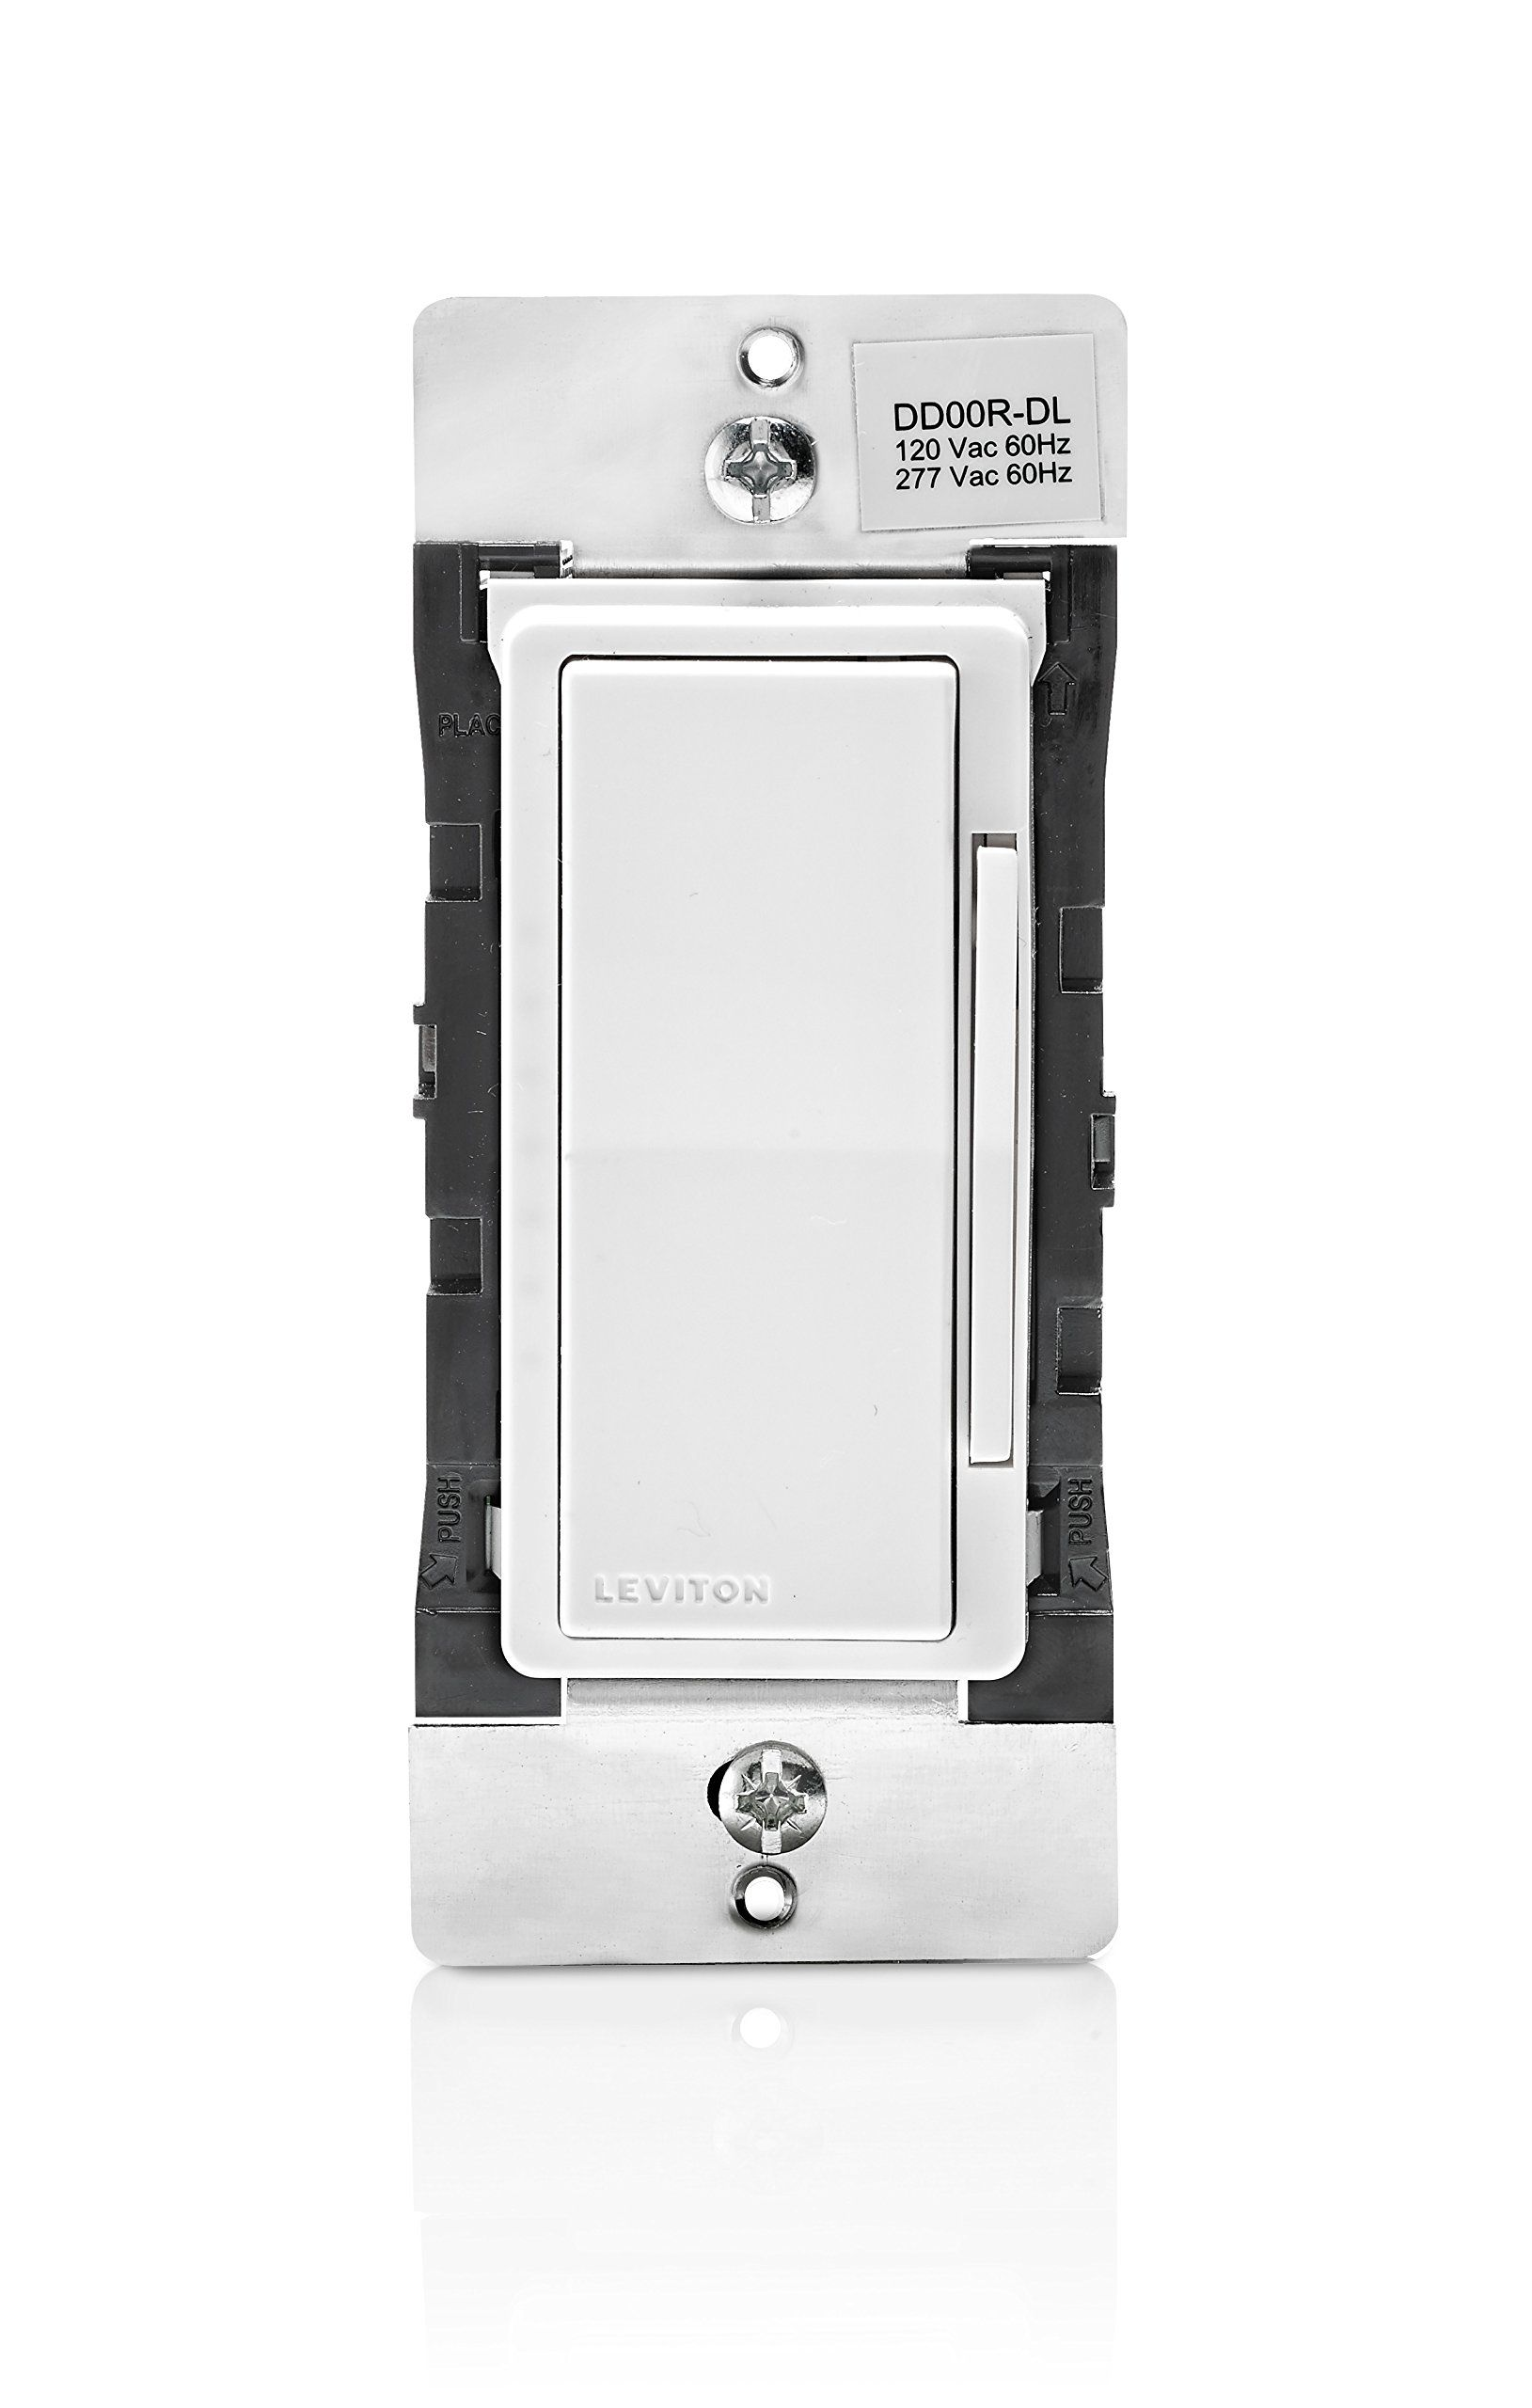 Leviton Dd00rdlz 120vac 60 Hz Decora Digital Decora Smart Matching Dimmer Remote Read More Reviews Of The Product By Visiting The Lin Leviton Decora Remote